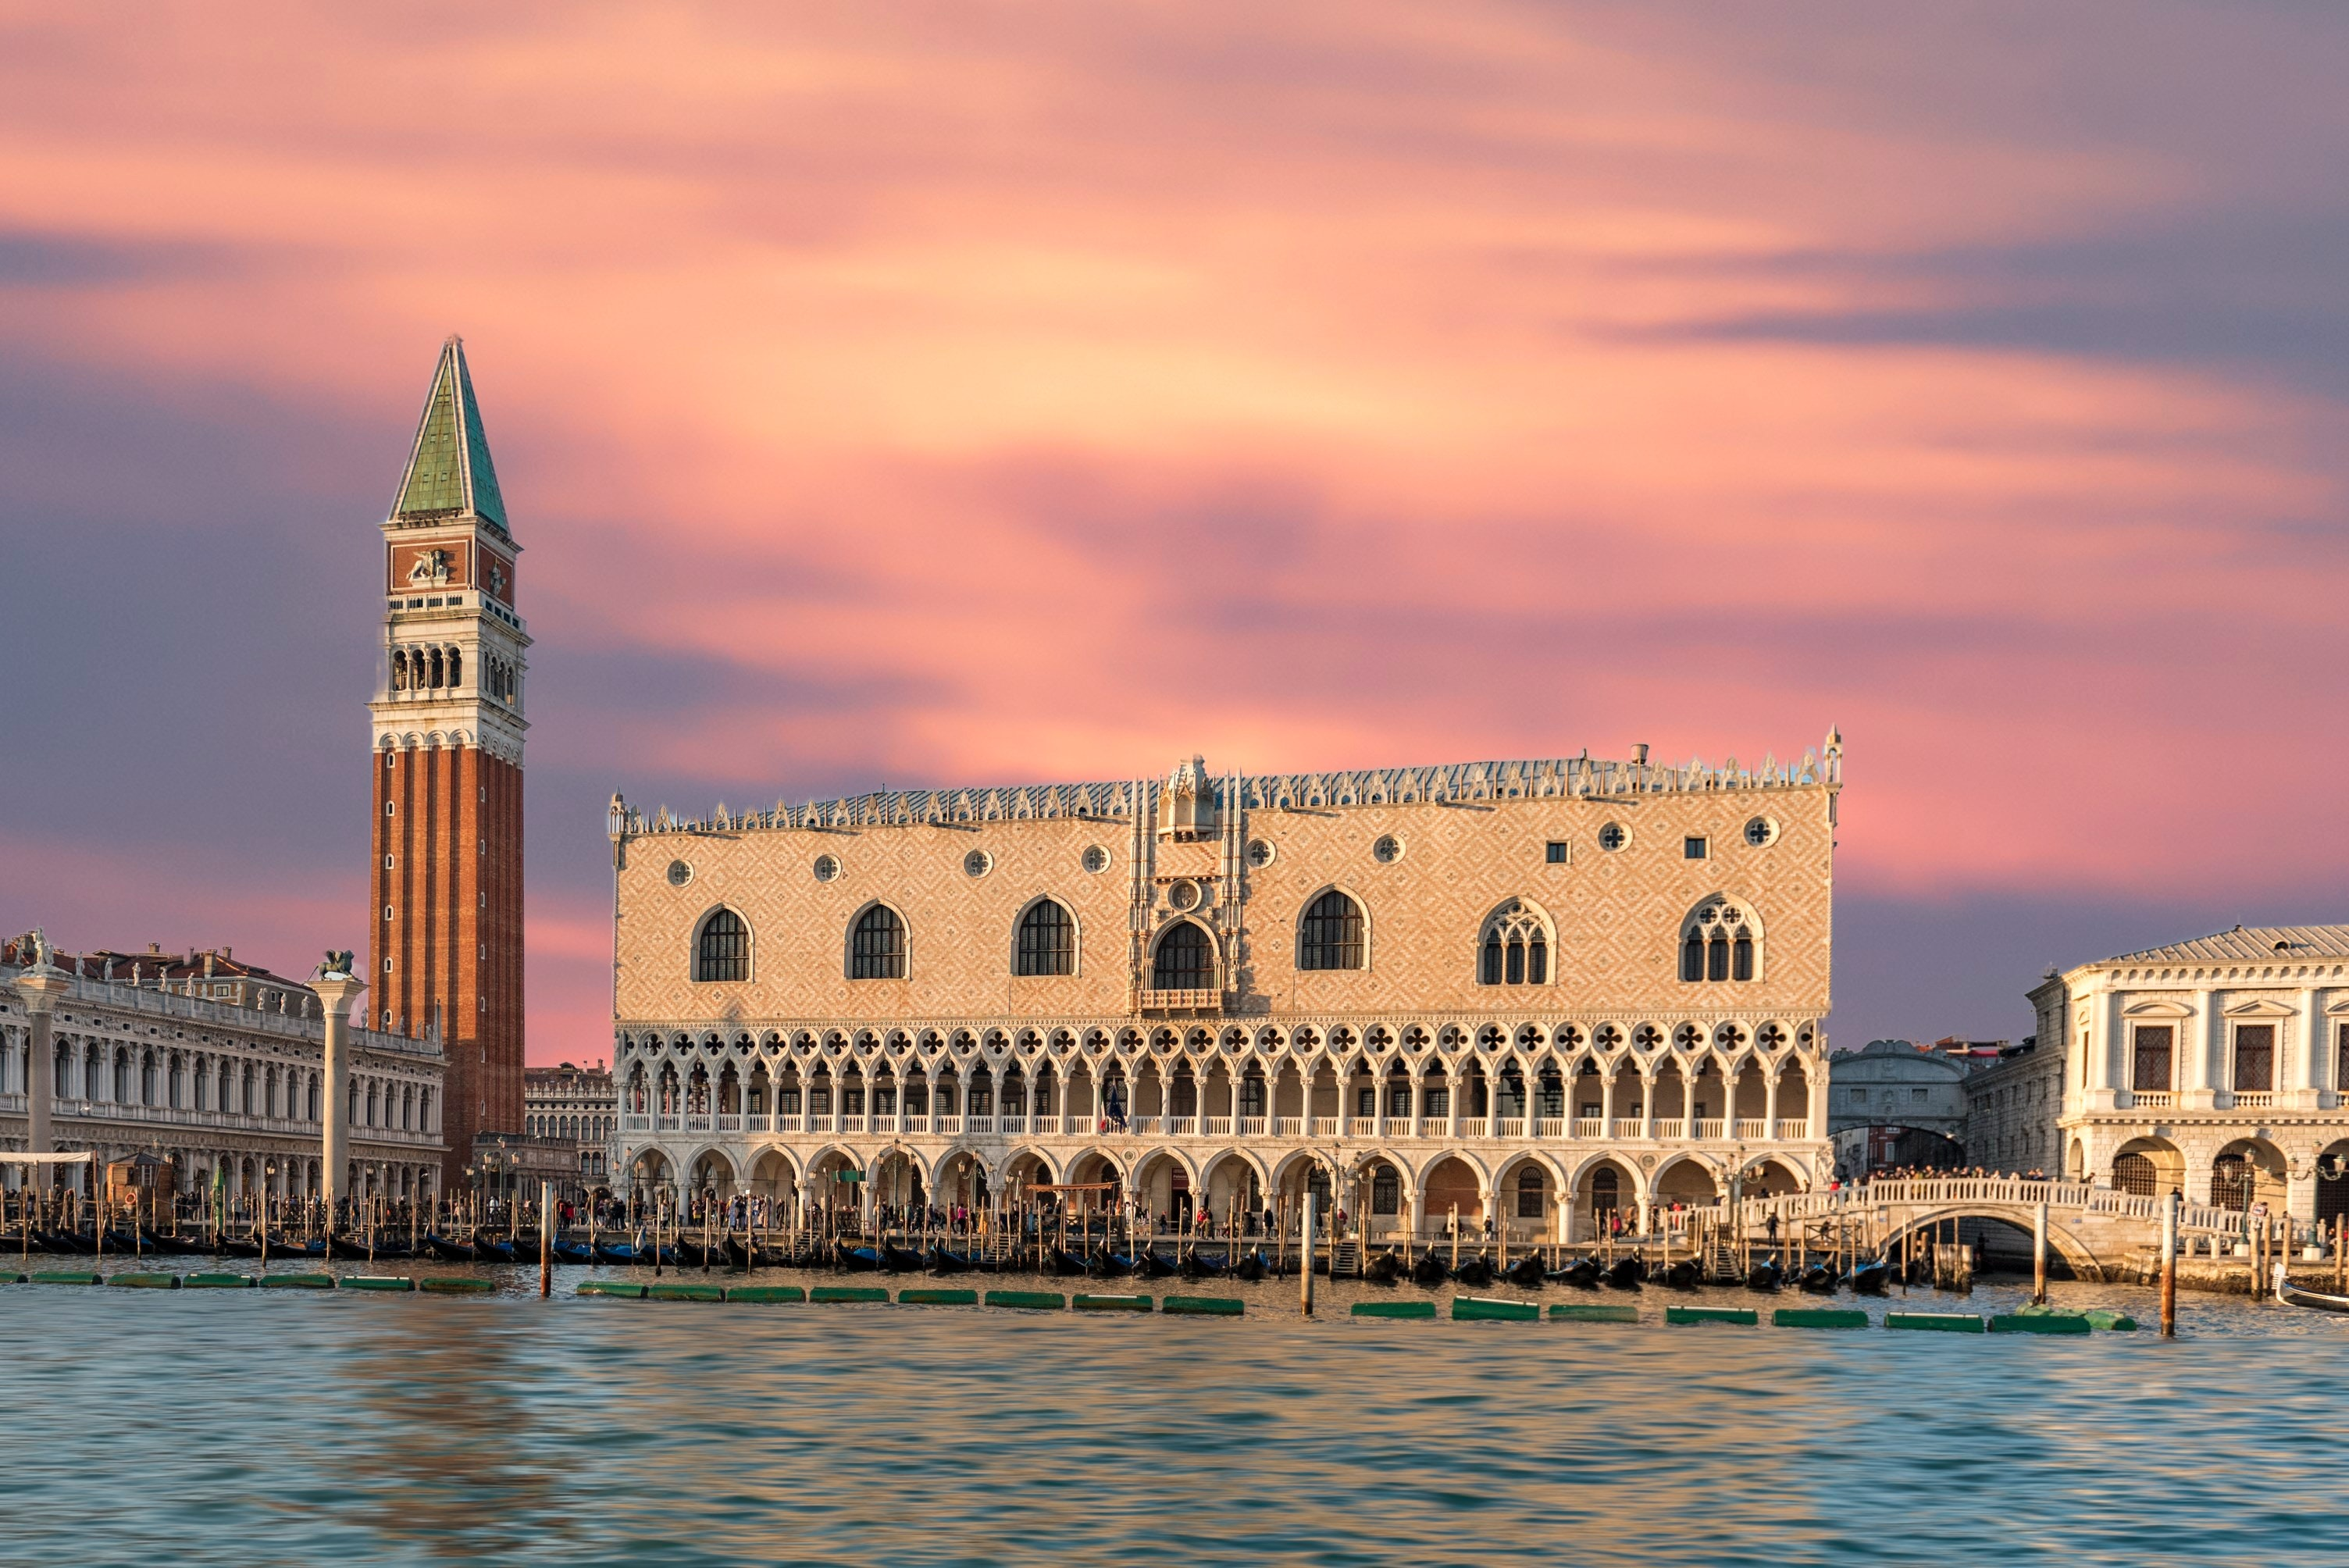 Doge's Palace in Italy